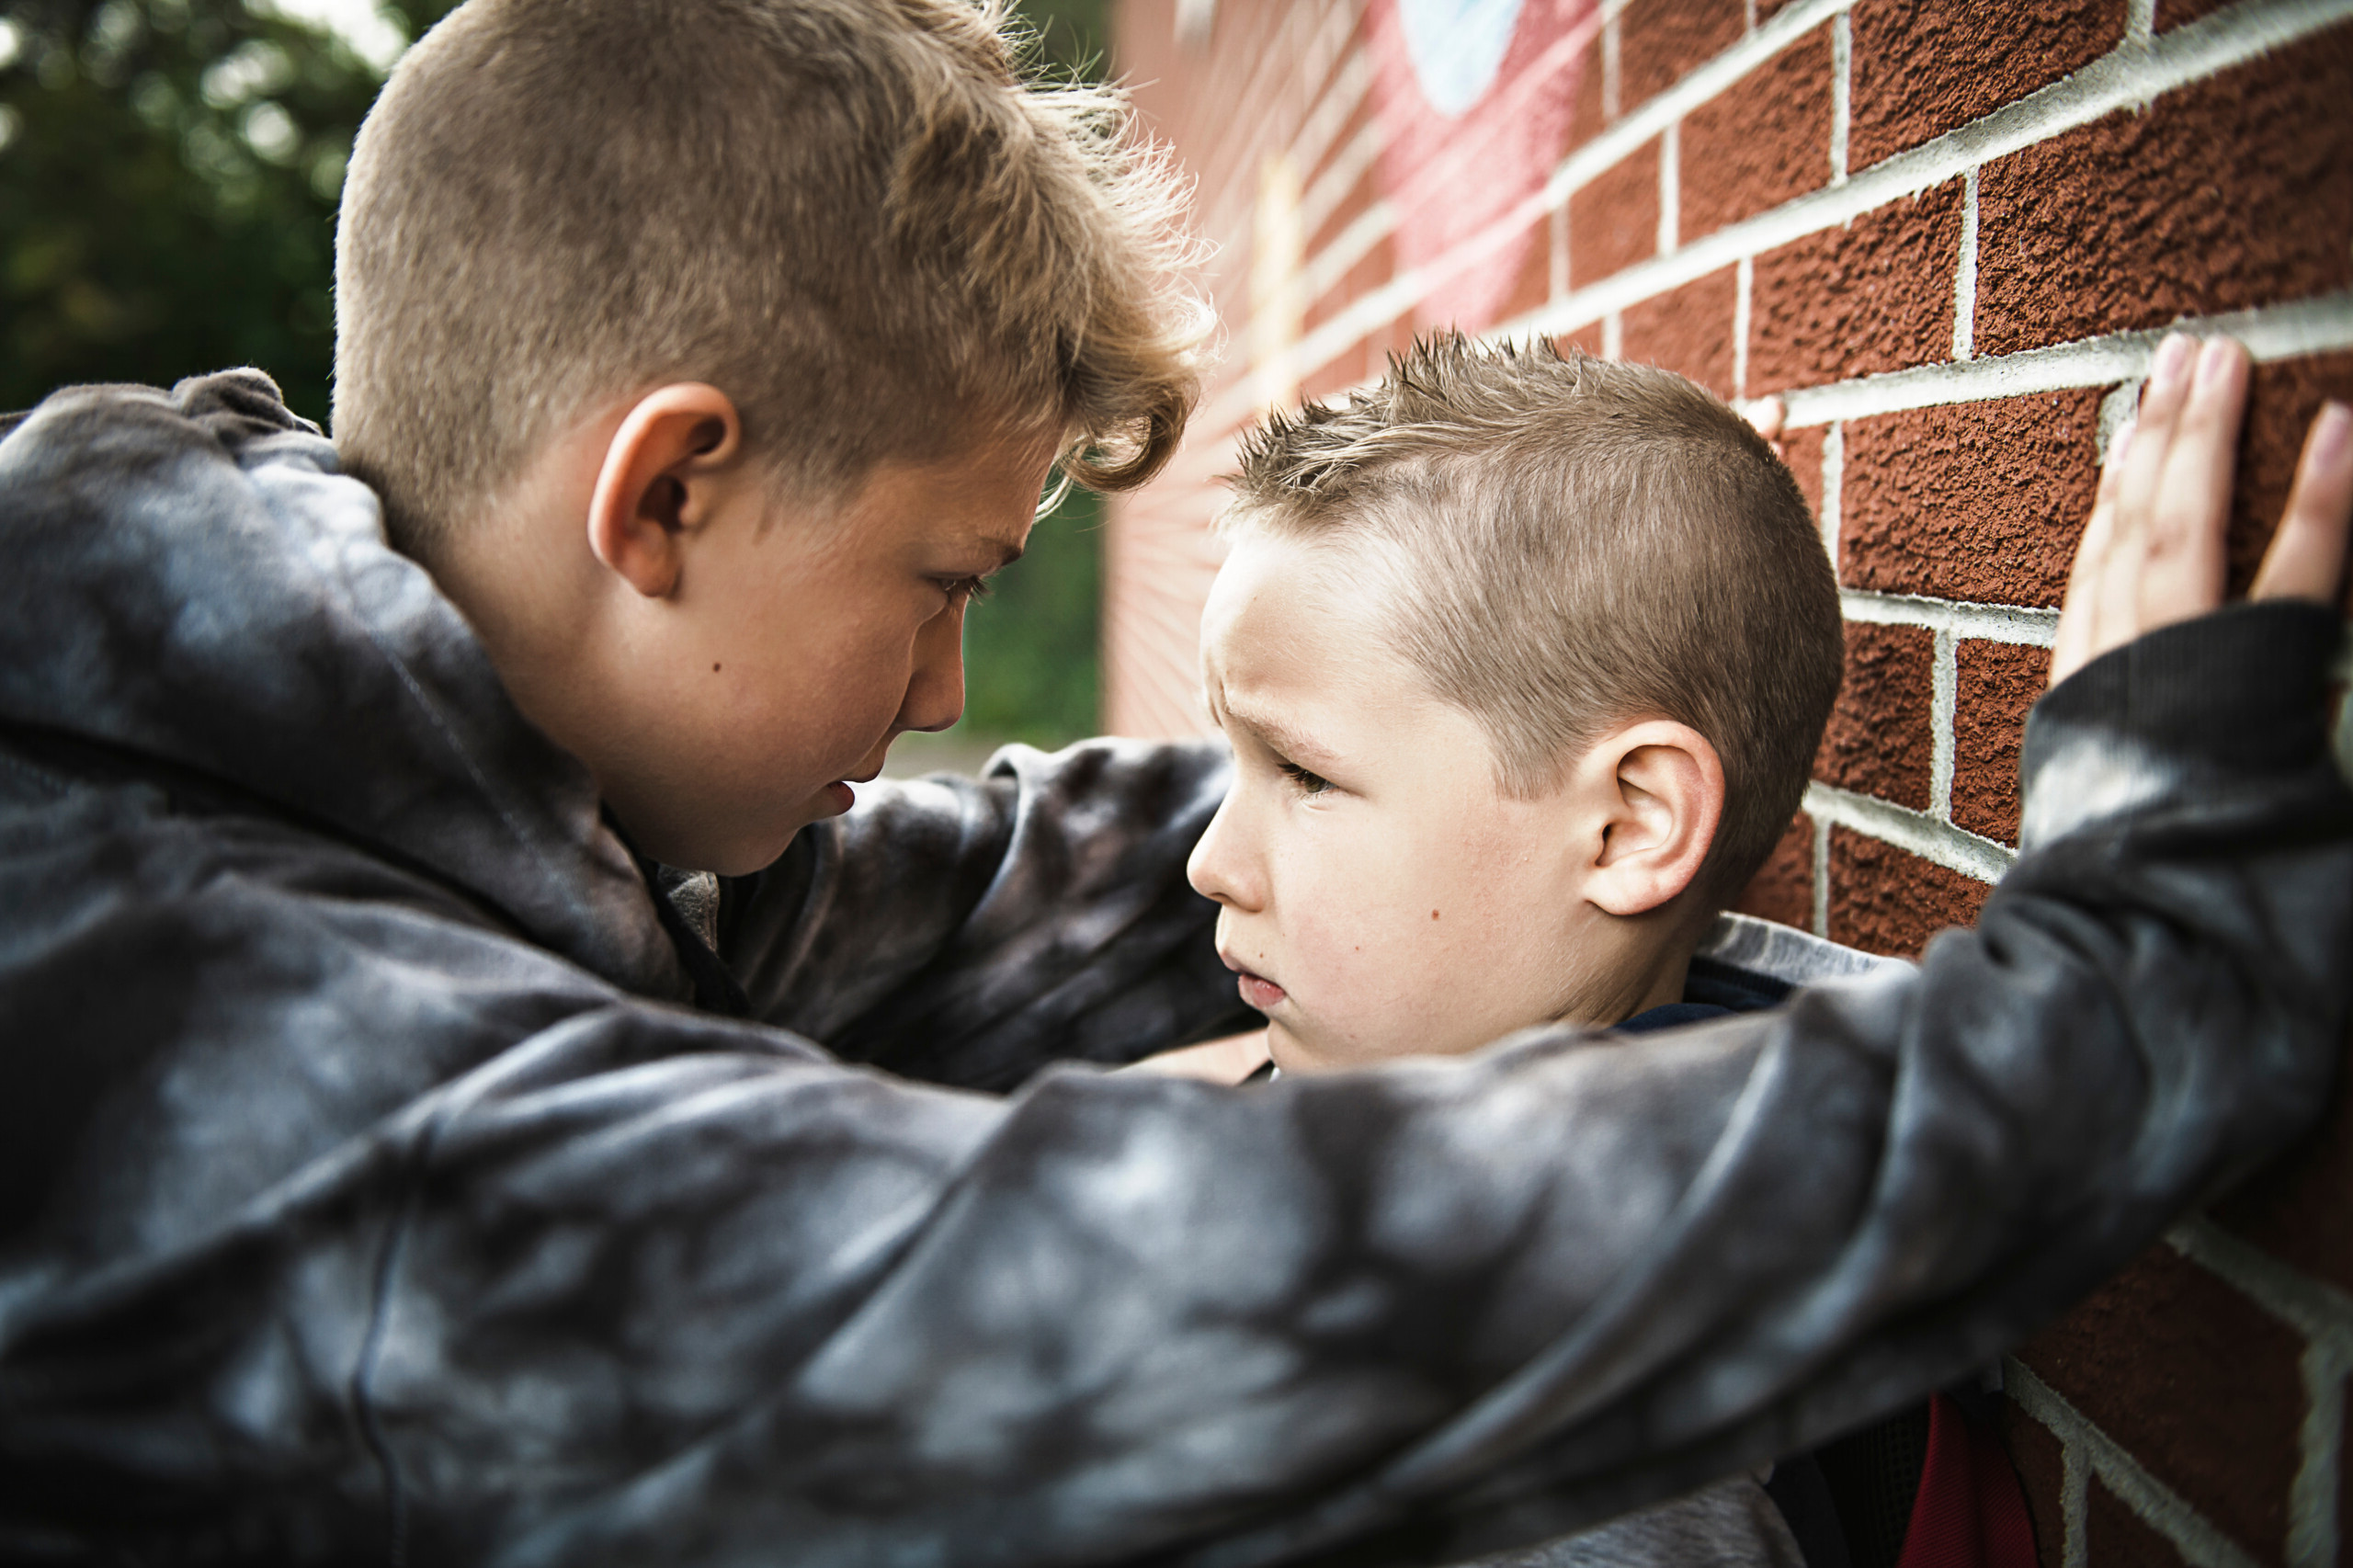 Can Parents Make Their Child Immune to Bullying?